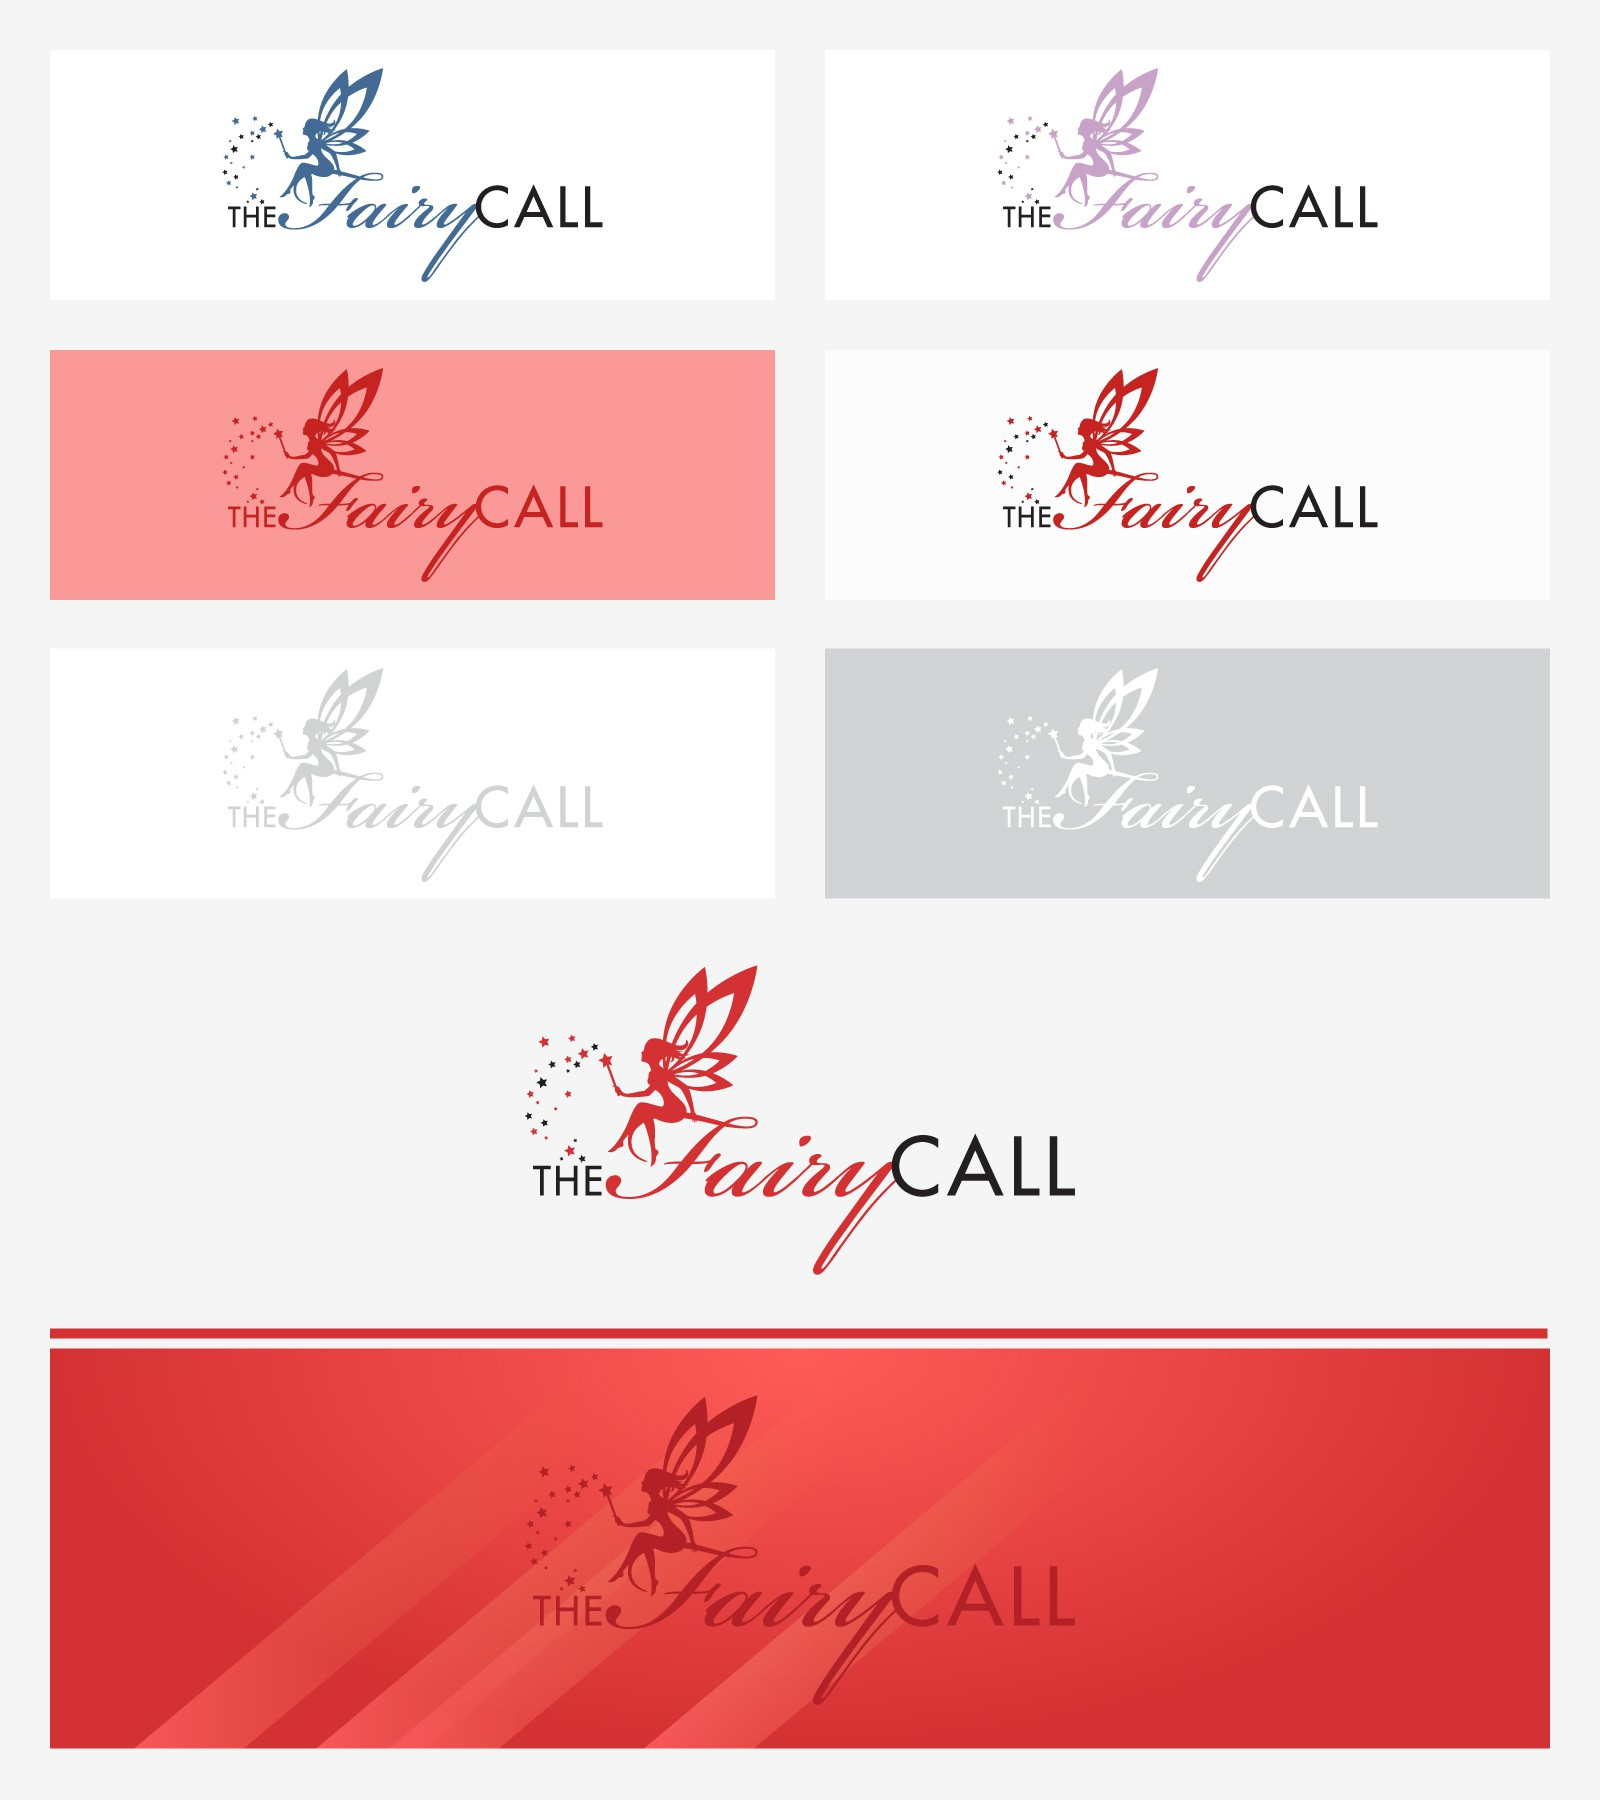 New logo wanted for The Fairy Call